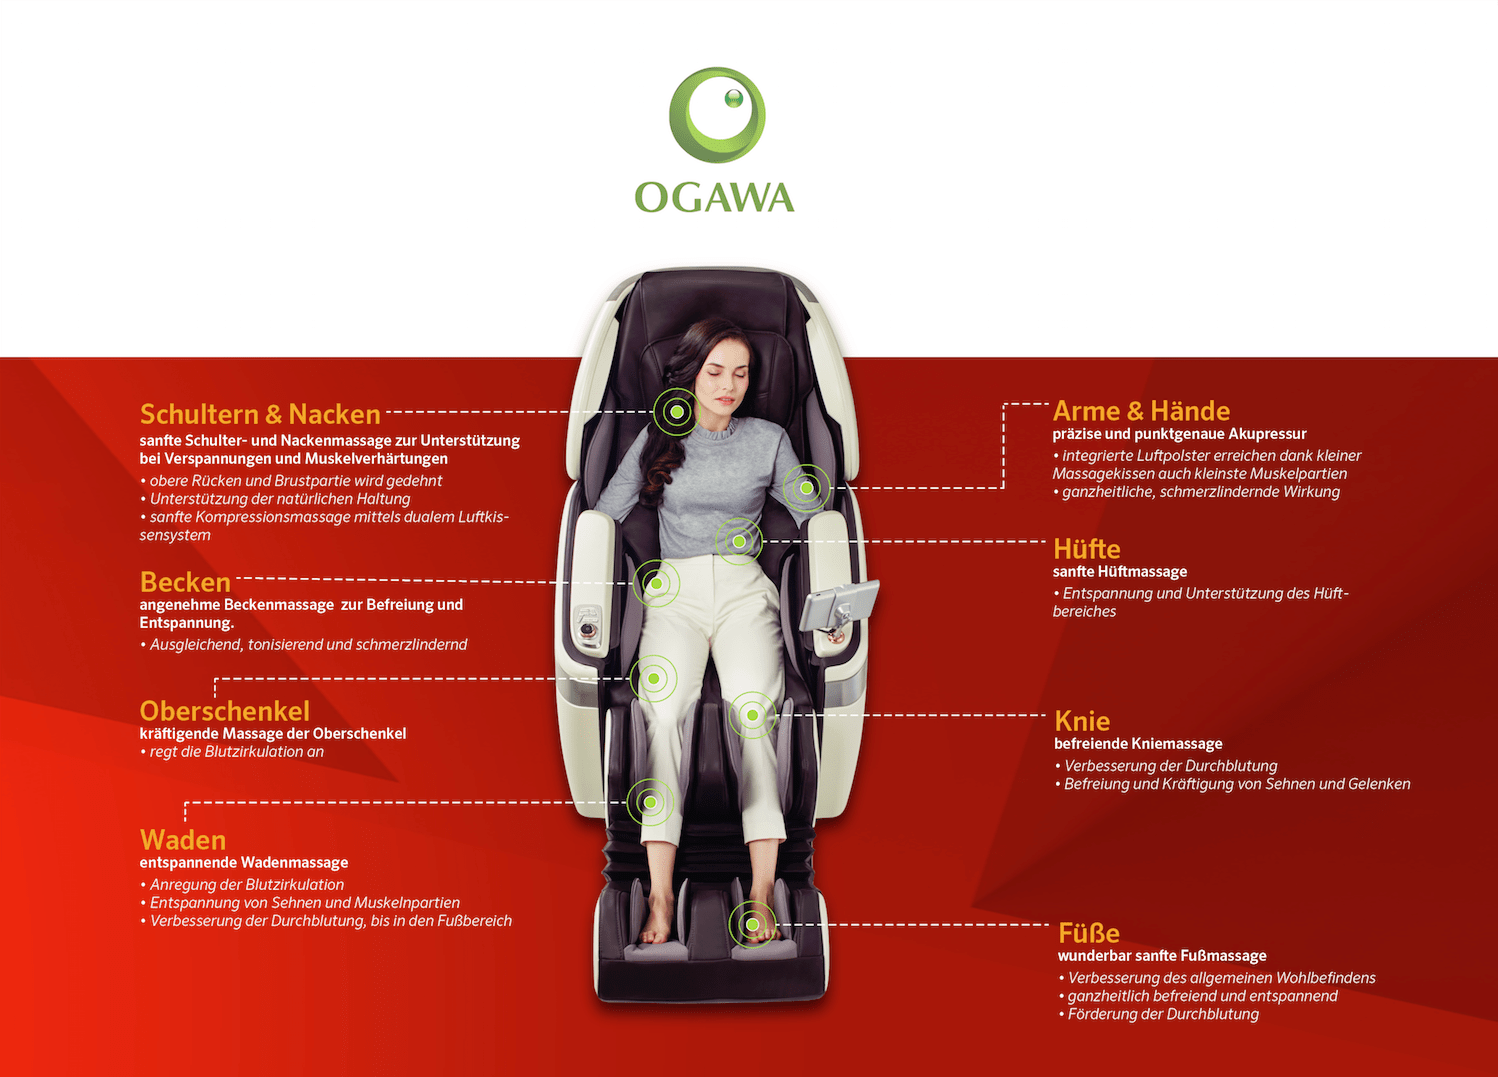 ogawa-masterdrive-massagezonen